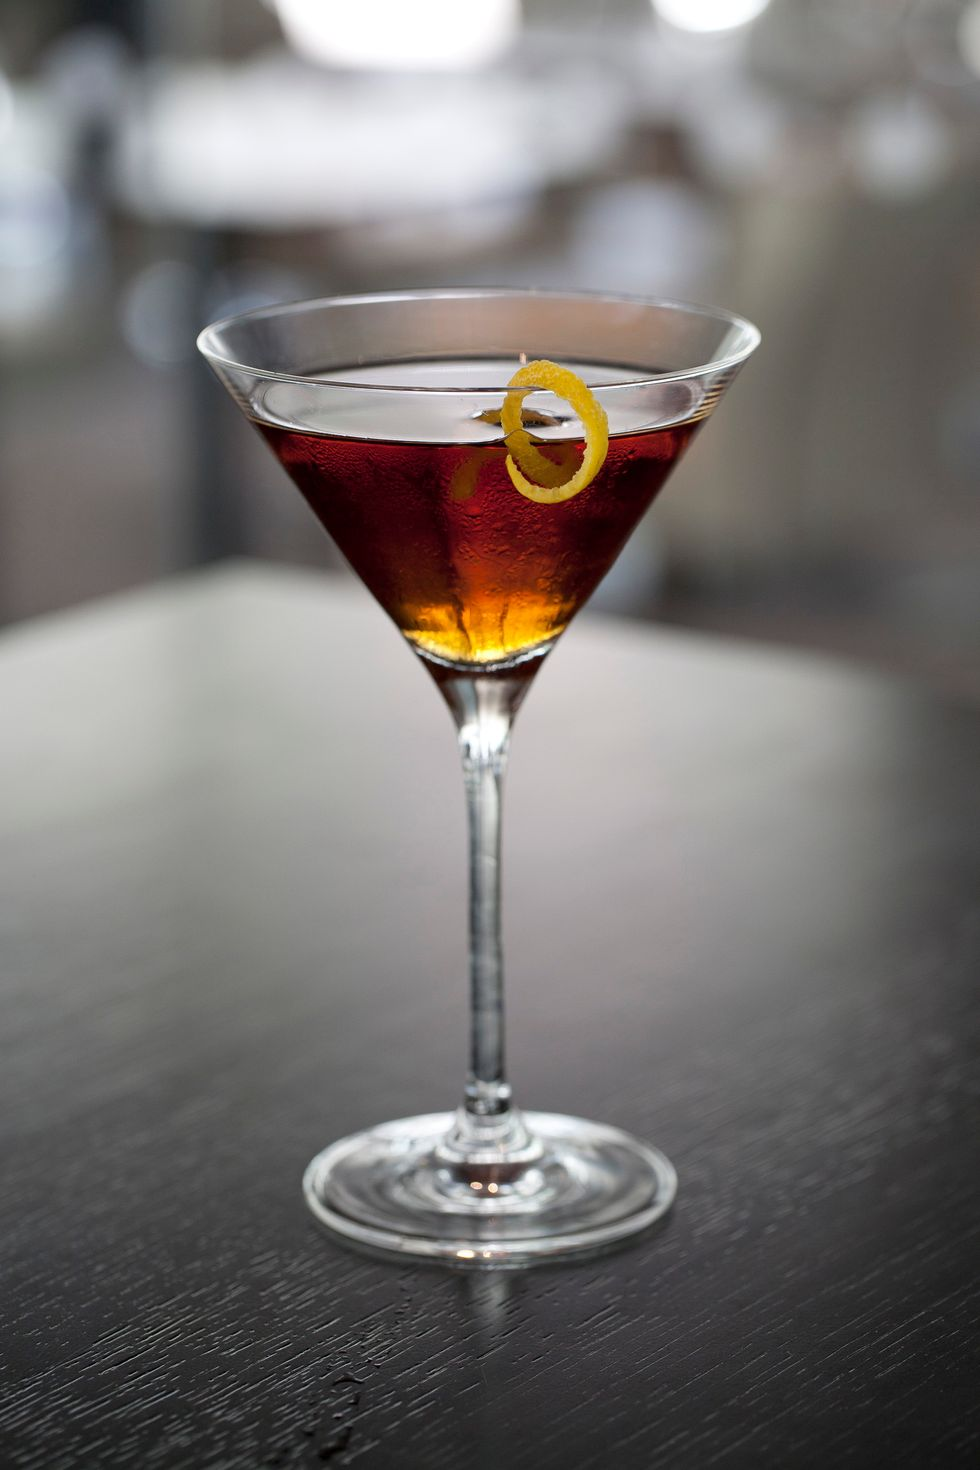 Now that NYFW Is Over, Head to Lincoln Ristorante for a Negroni